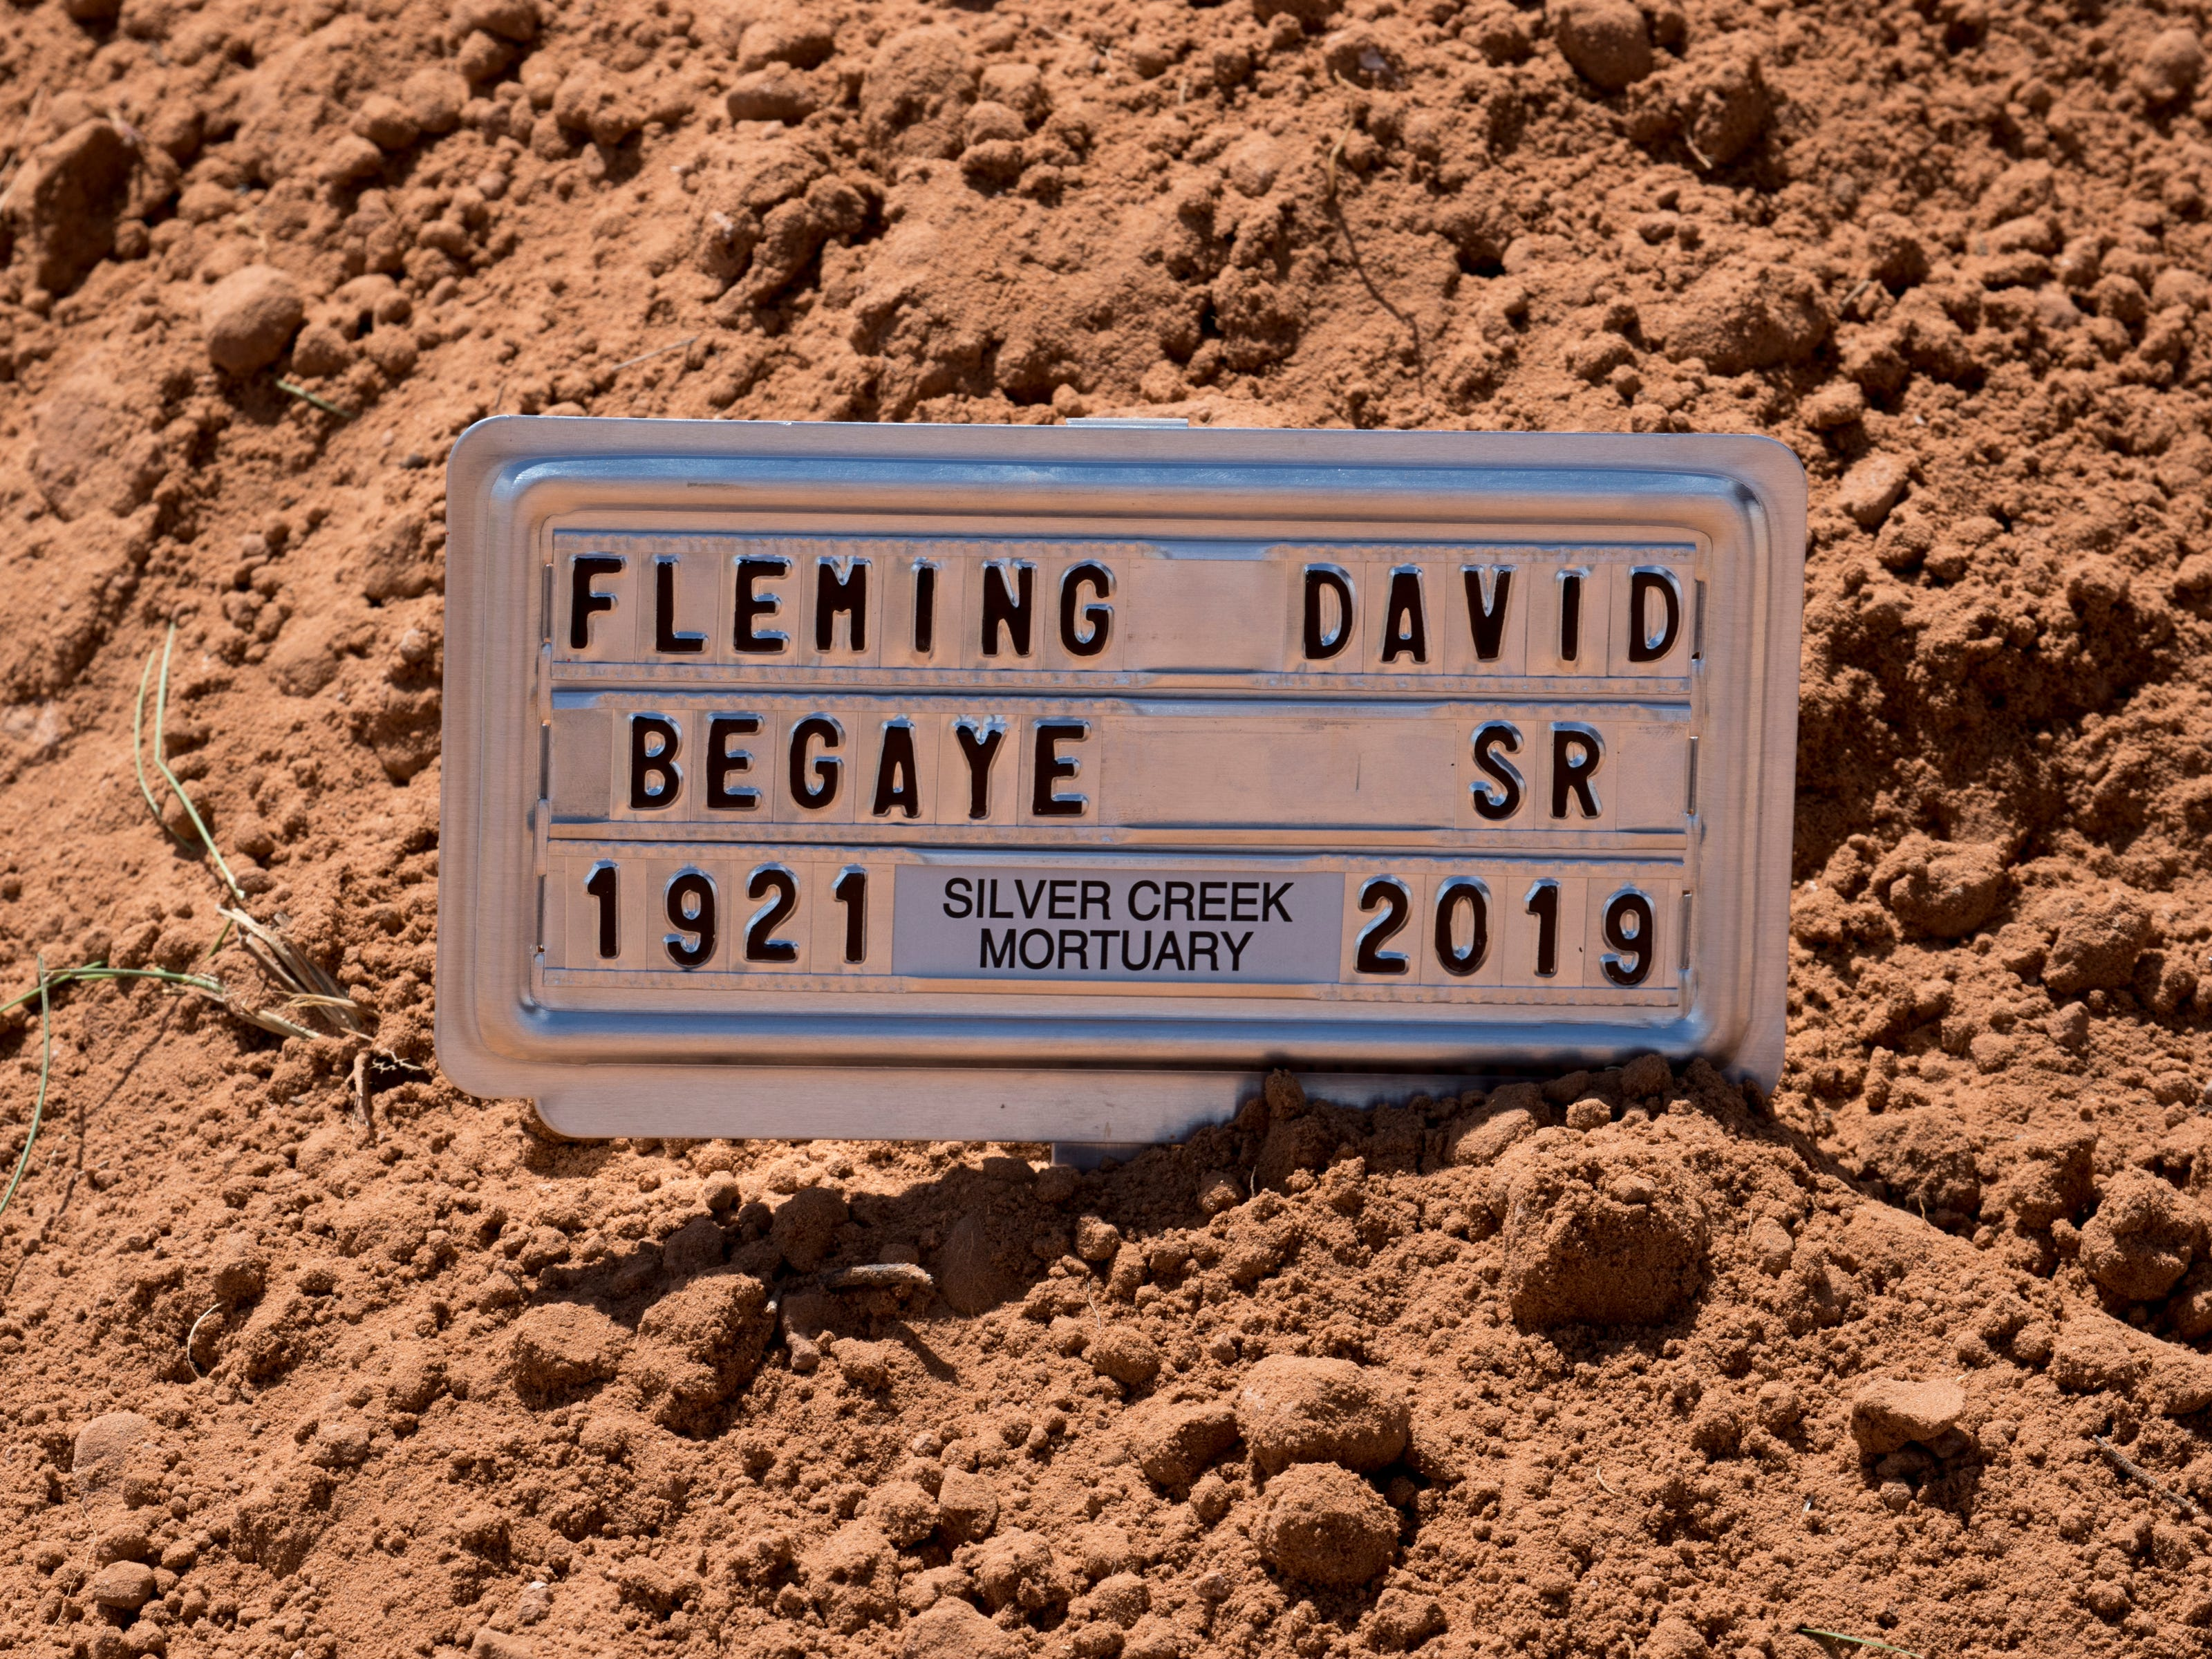 Navajo Code Talker Fleming Begaye Sr. was buried with full military honors on May 17, 2019, at the family plot in Salt Water Canyon, Ariz.